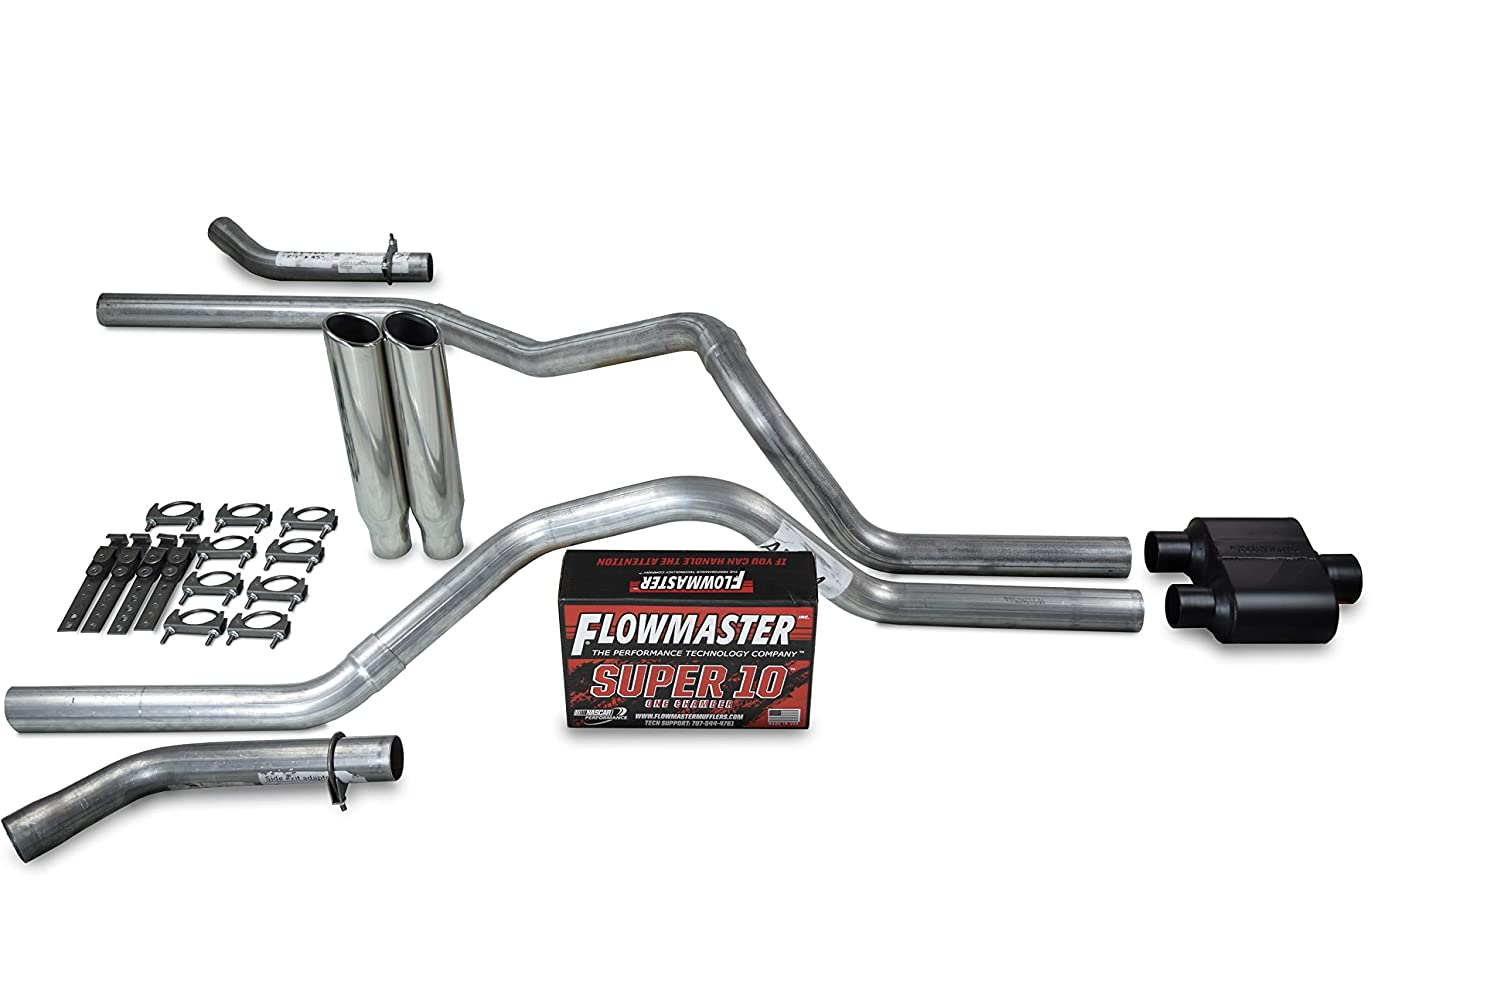 Shop Line Dual Exhaust System 2.5 Stainless Steel Flowmaster Super 10 2.5 Polished Rolled Edge Clamp on Tip Truck Exhaust Kits